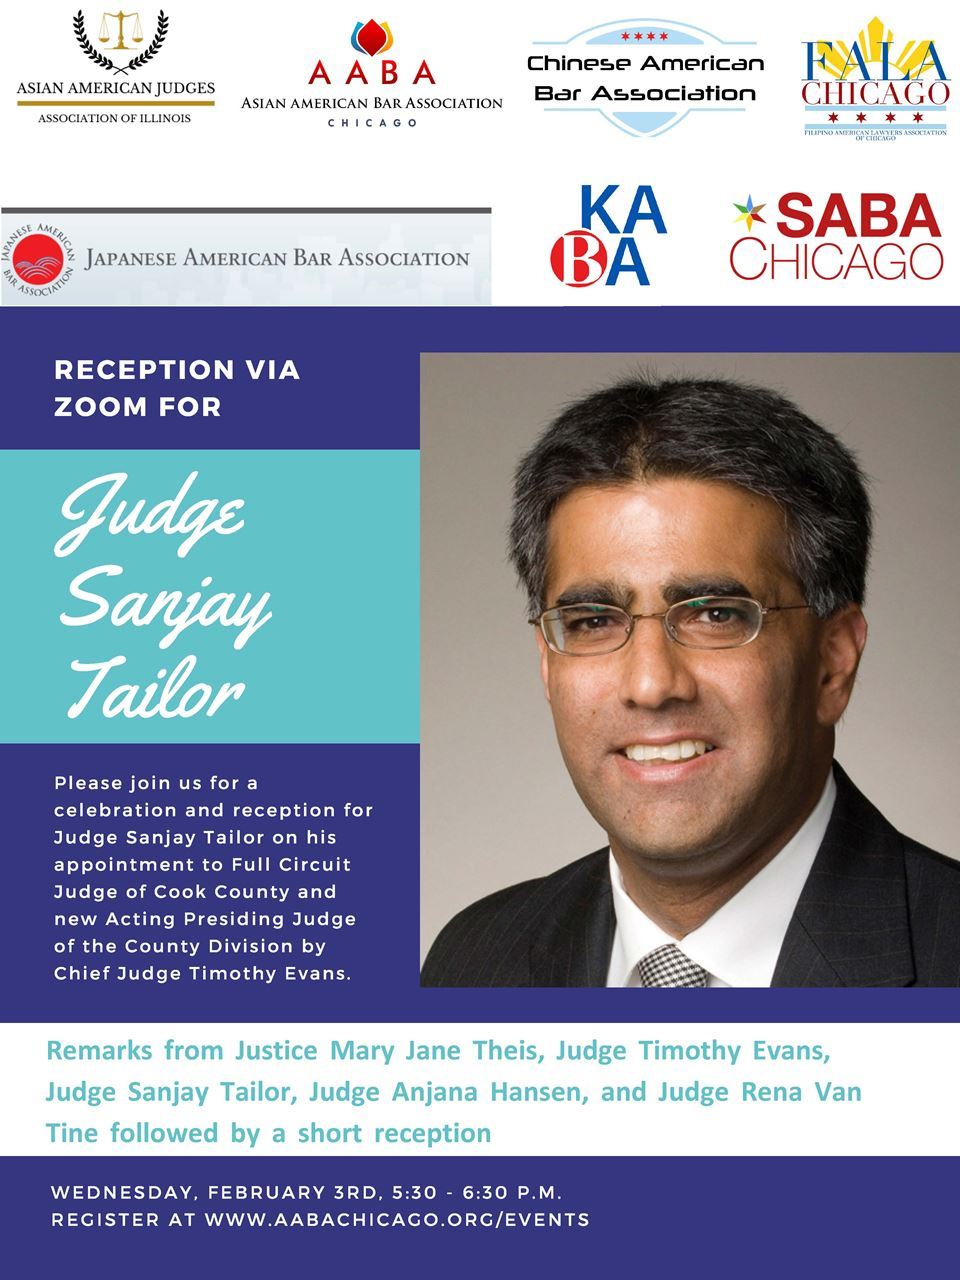 Reception for Judge Sanjay Tailor